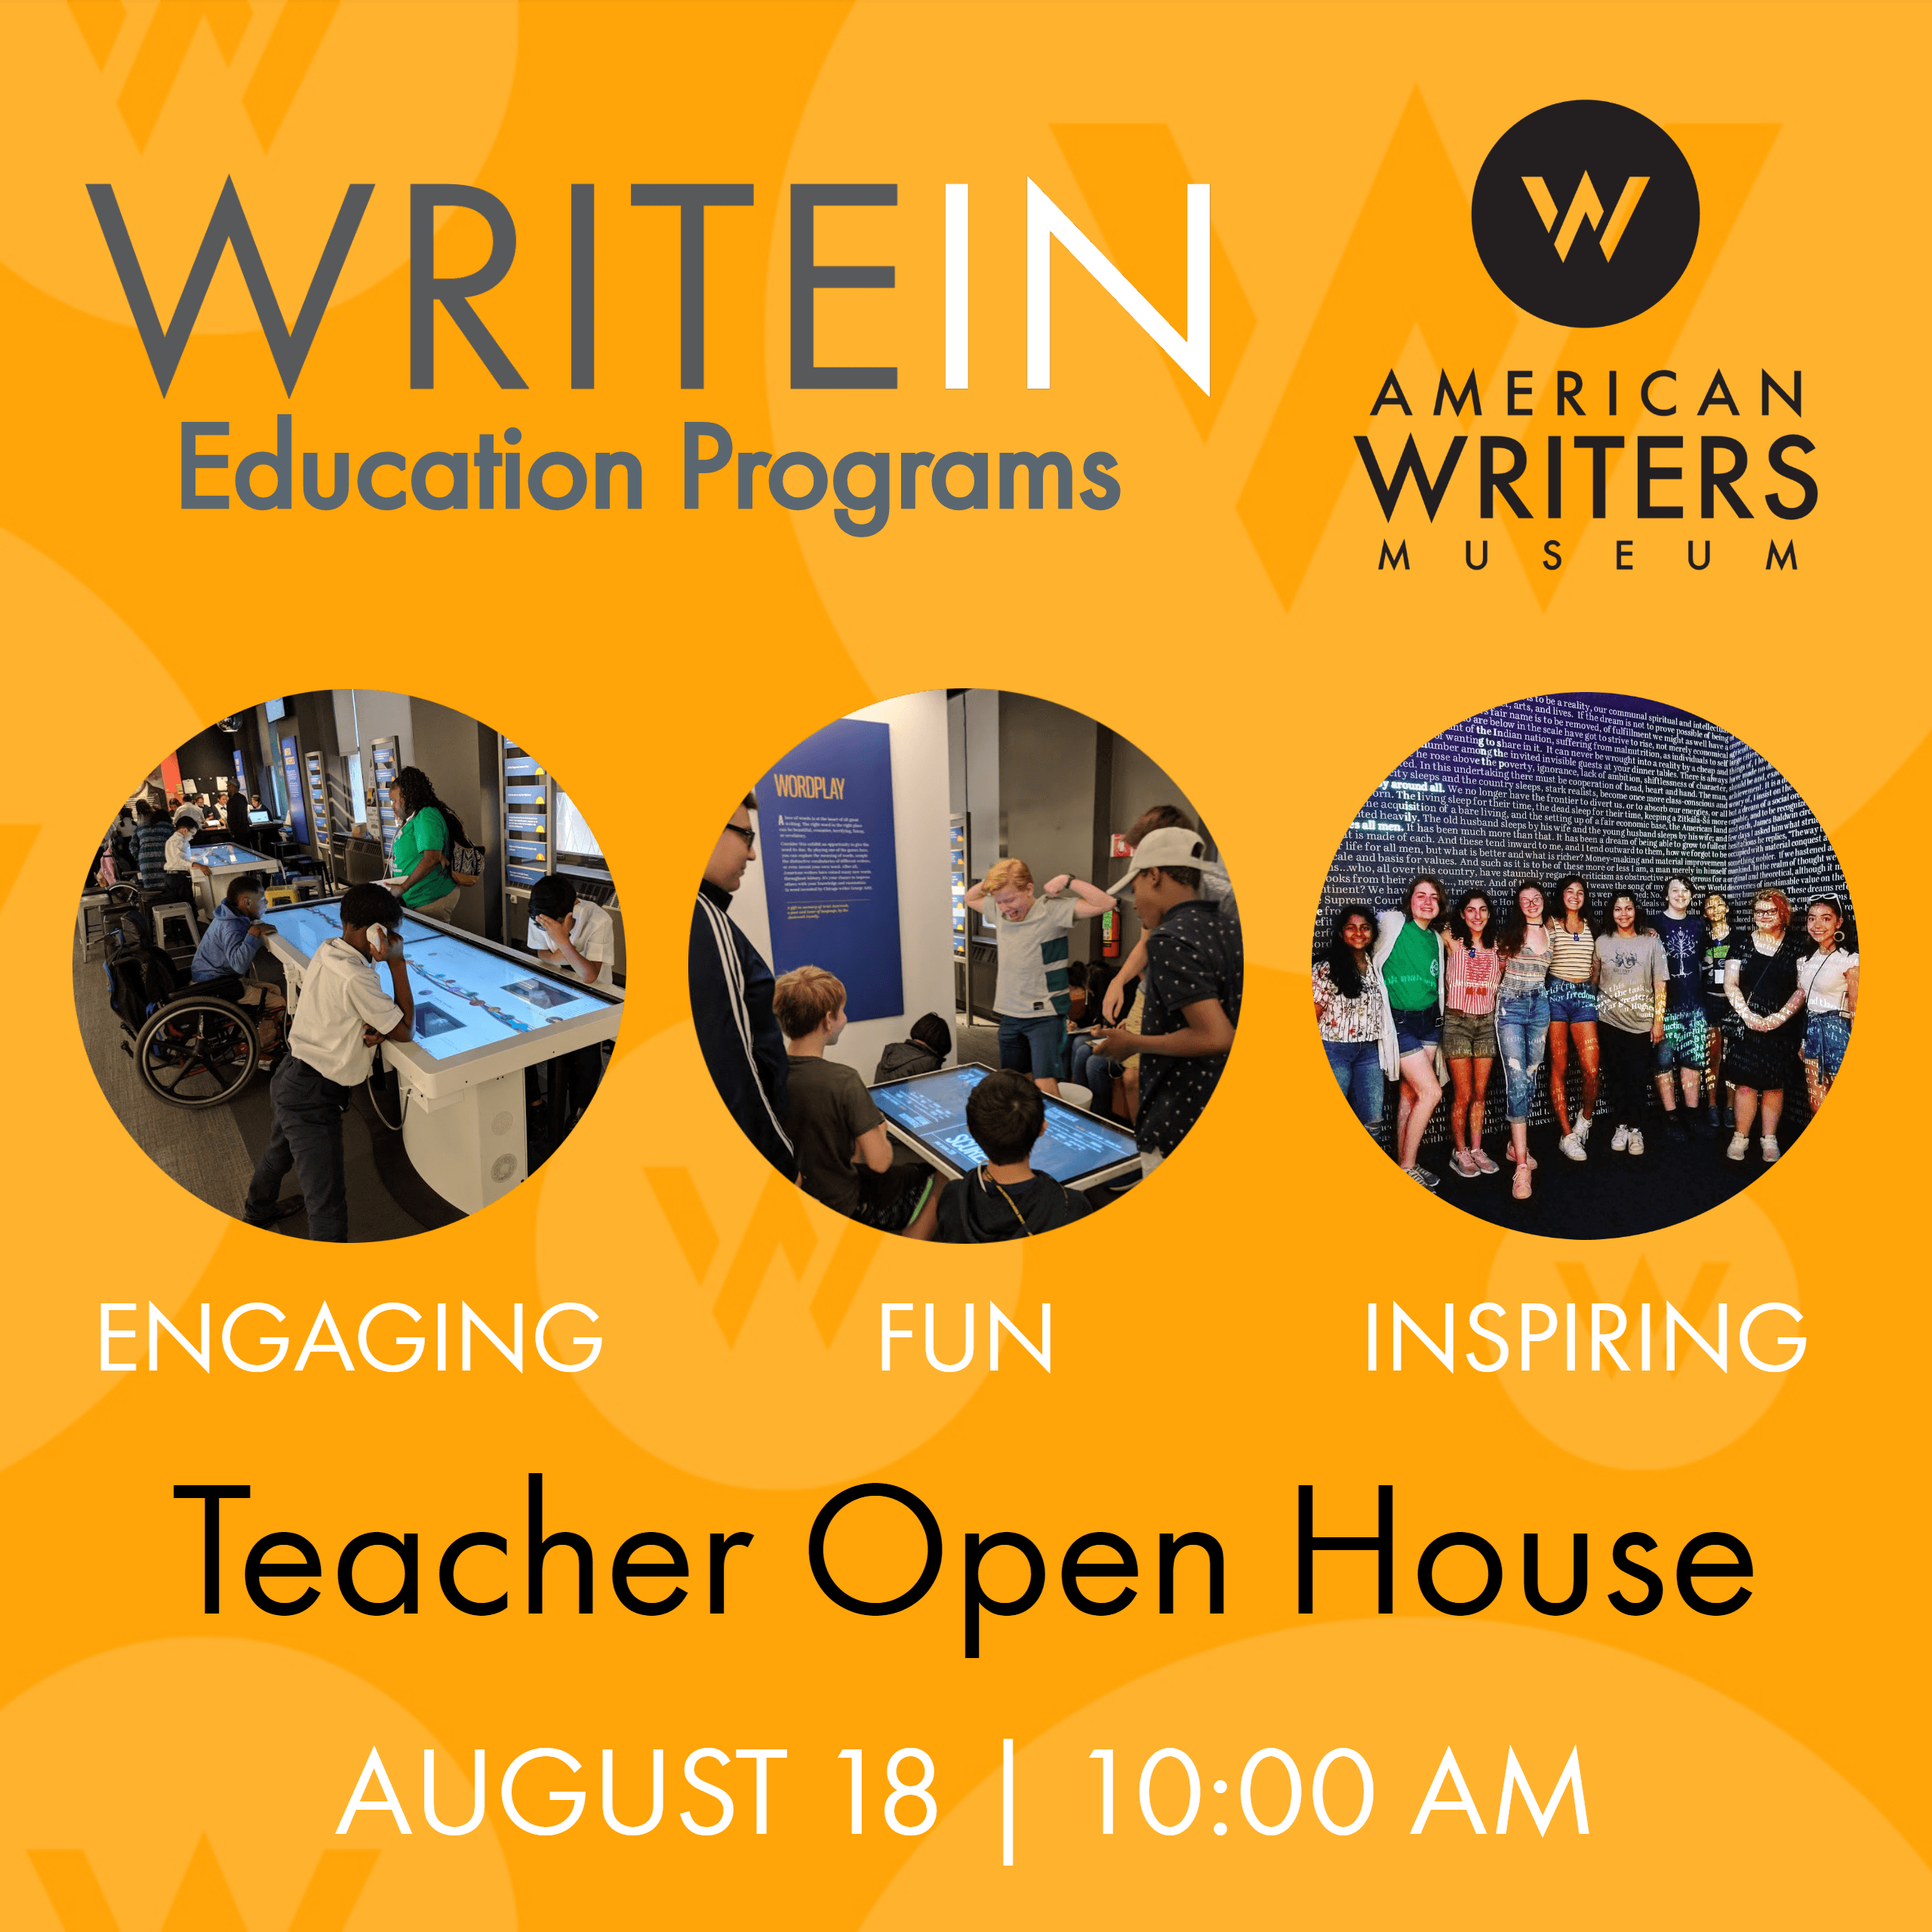 AWM WriteIn Education Programs hosts a Teacher Open House, August 18